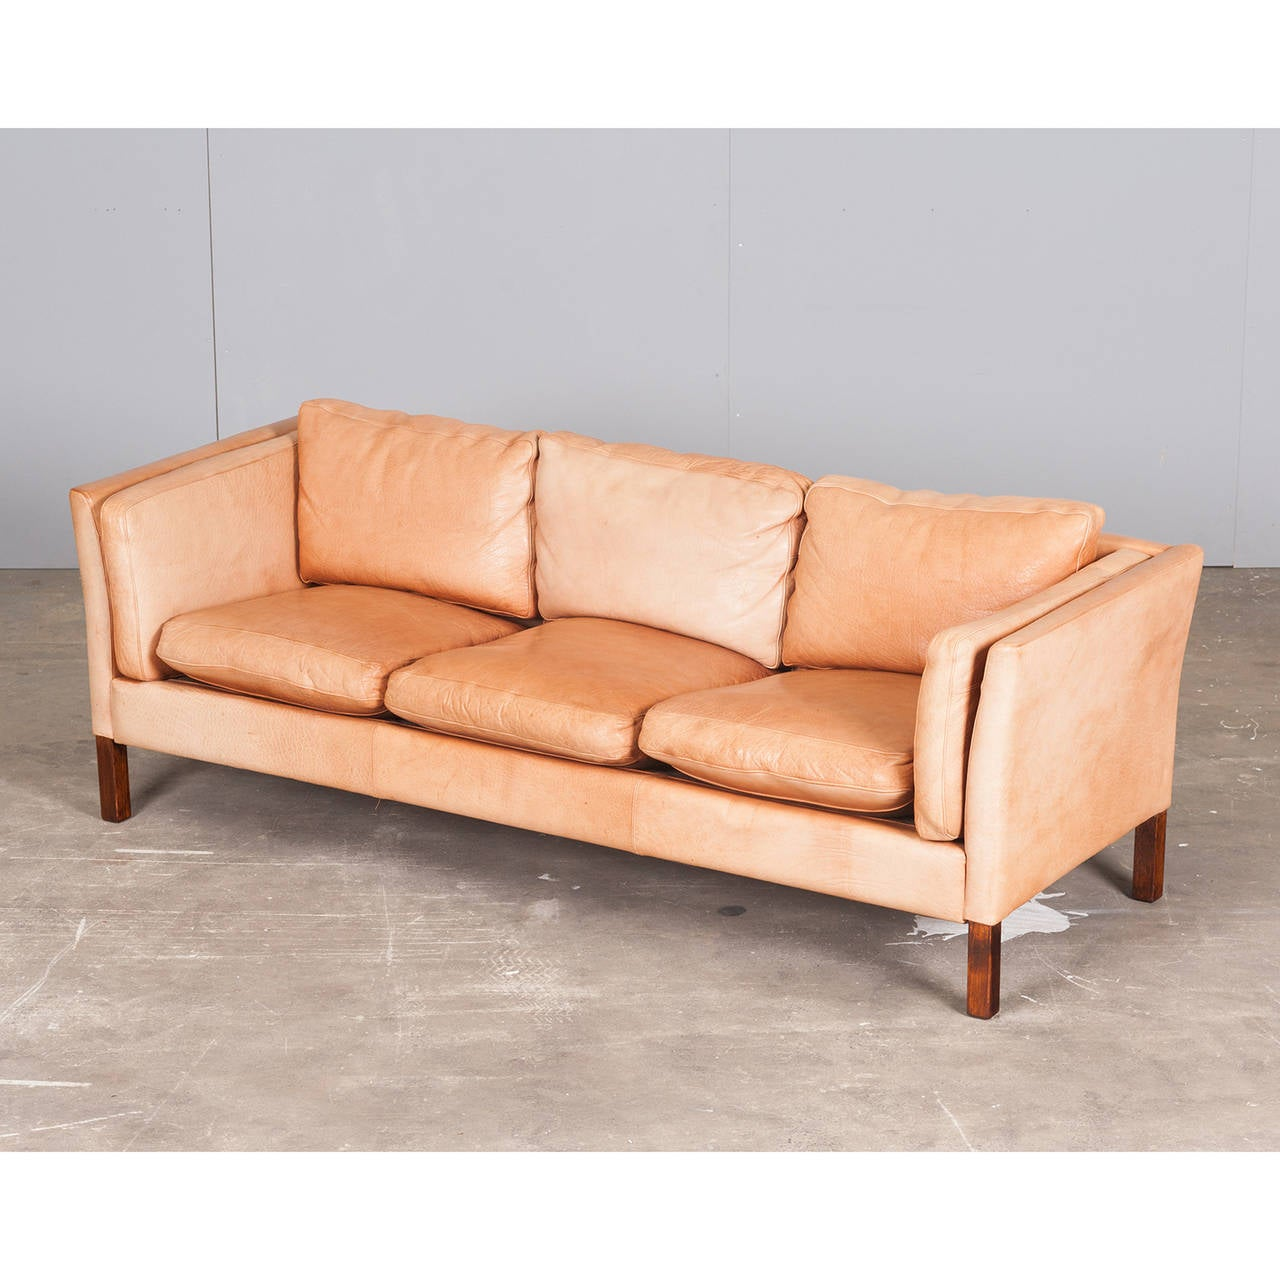 Danish Three-Seater Sofa in Light Tan Leather, 1960s For Sale at 1stdibs